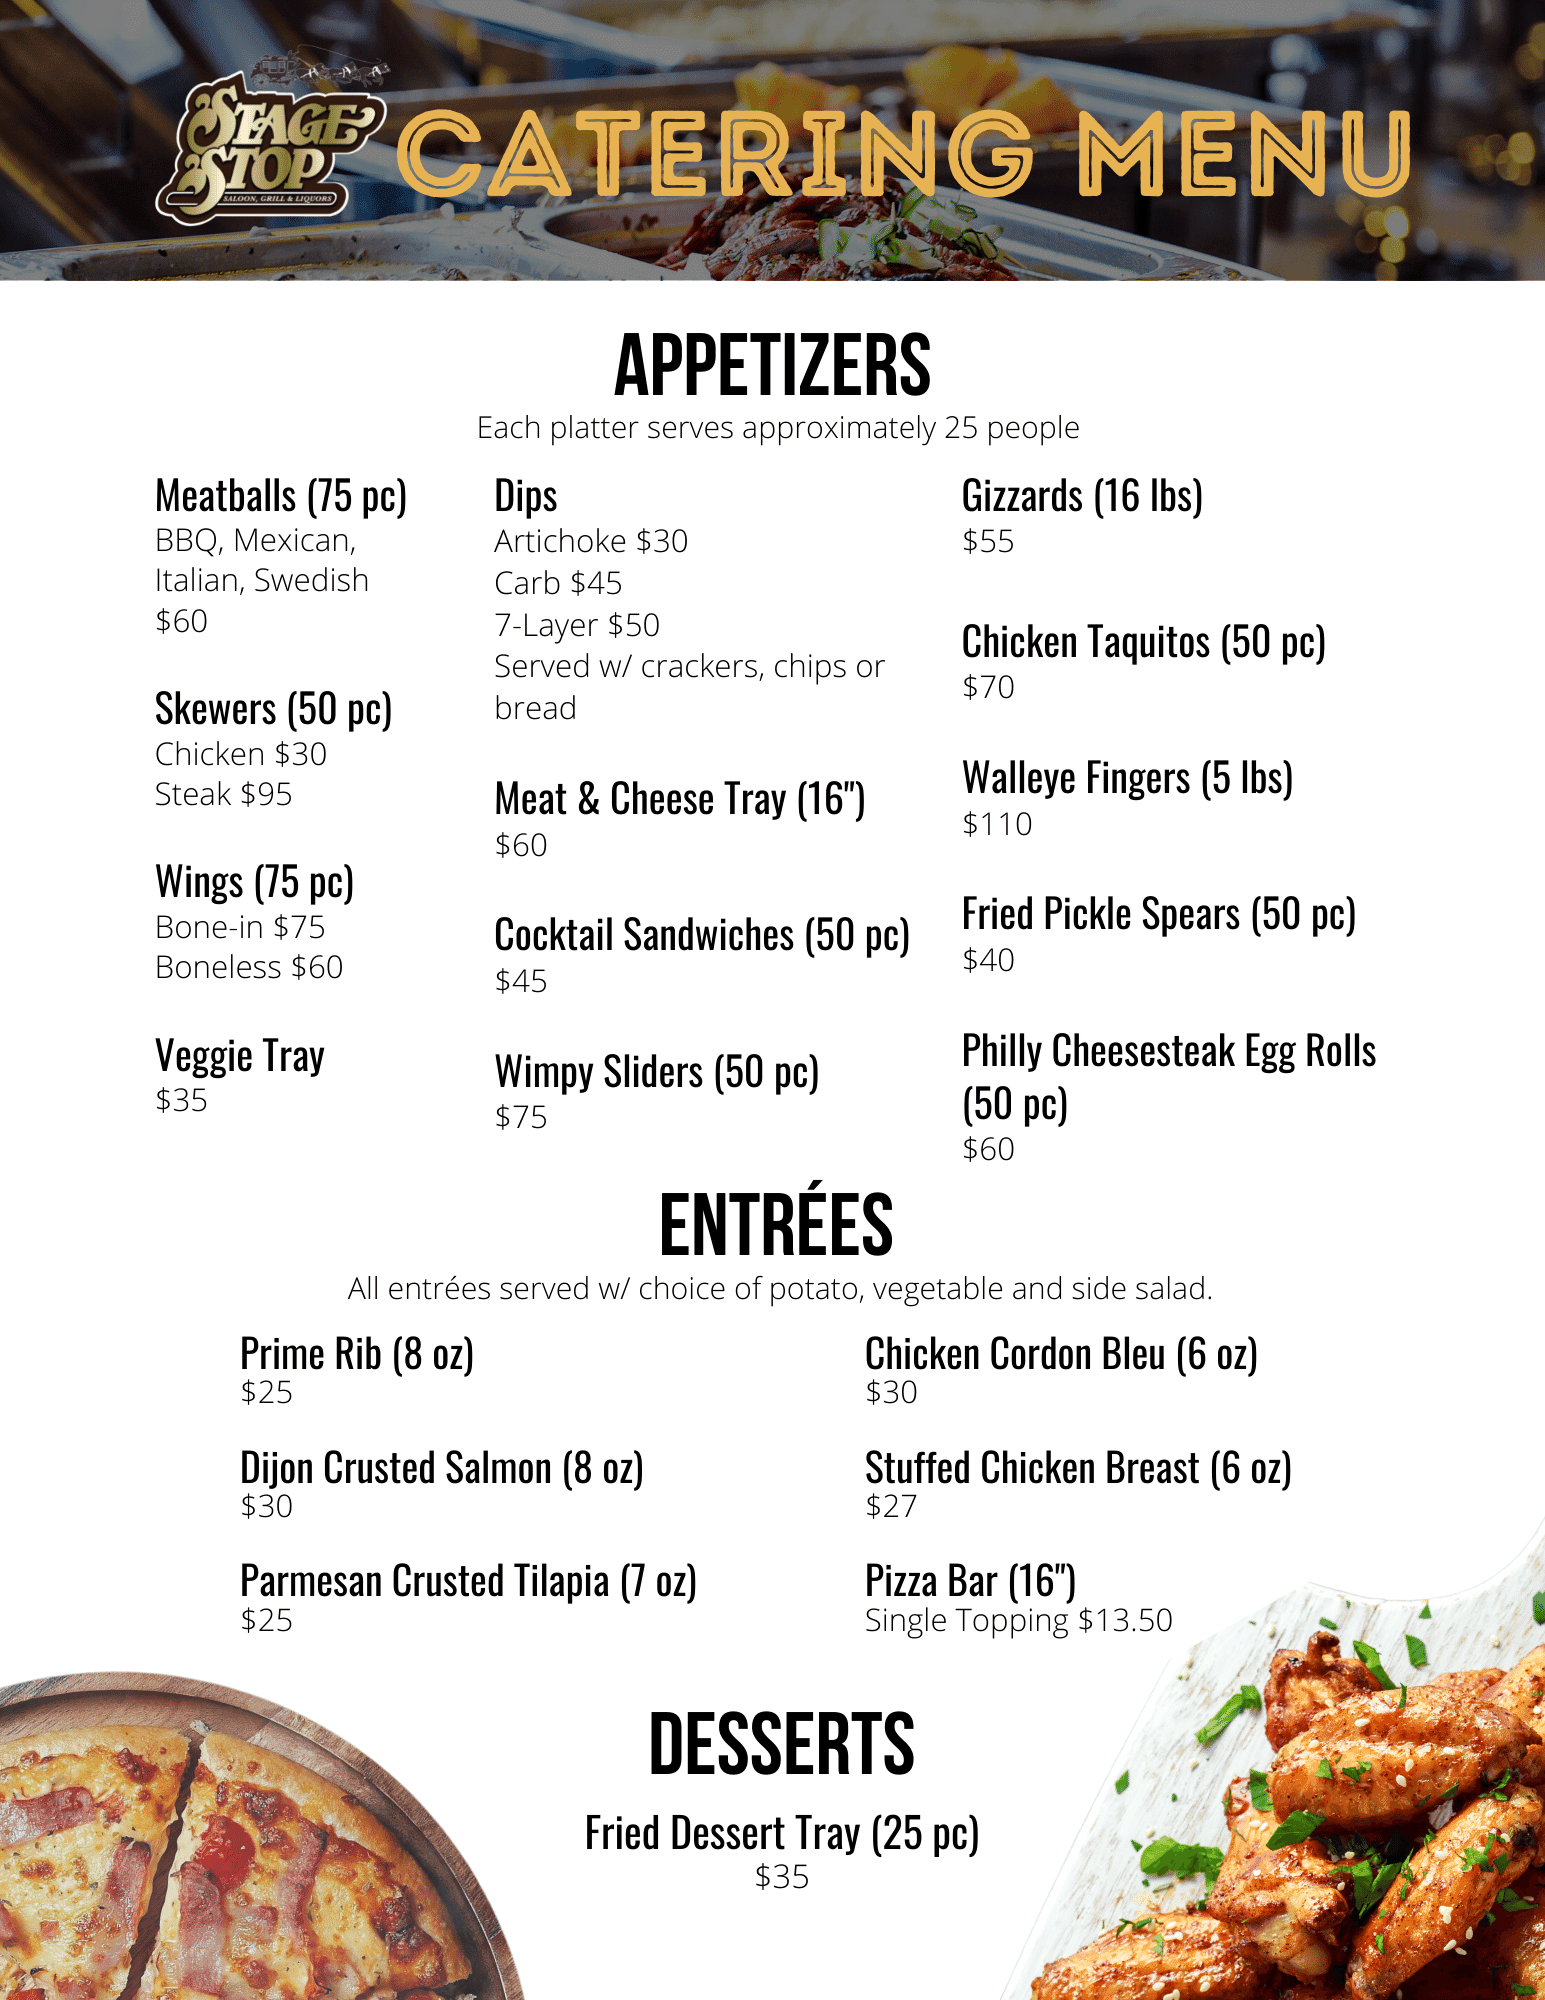 Stage Stop Catering Menu